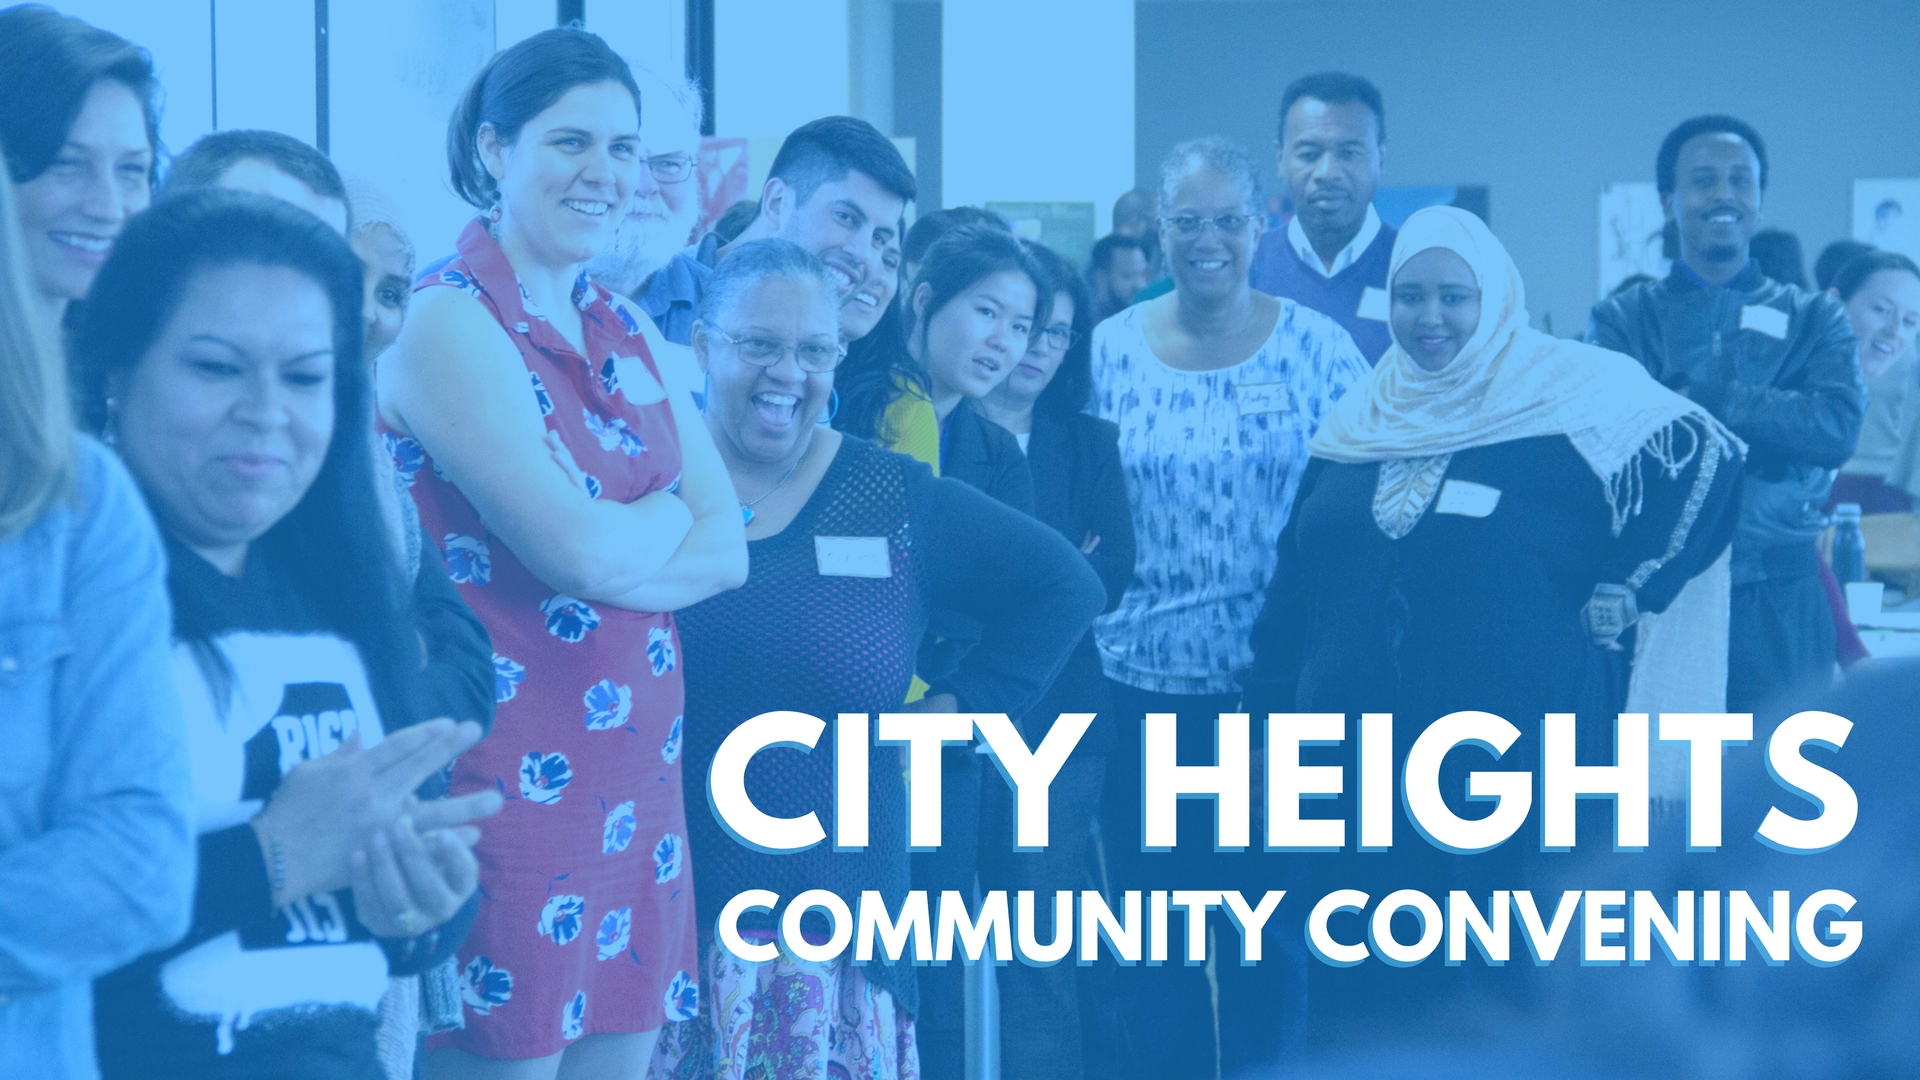 City Heights Community Convening Banner